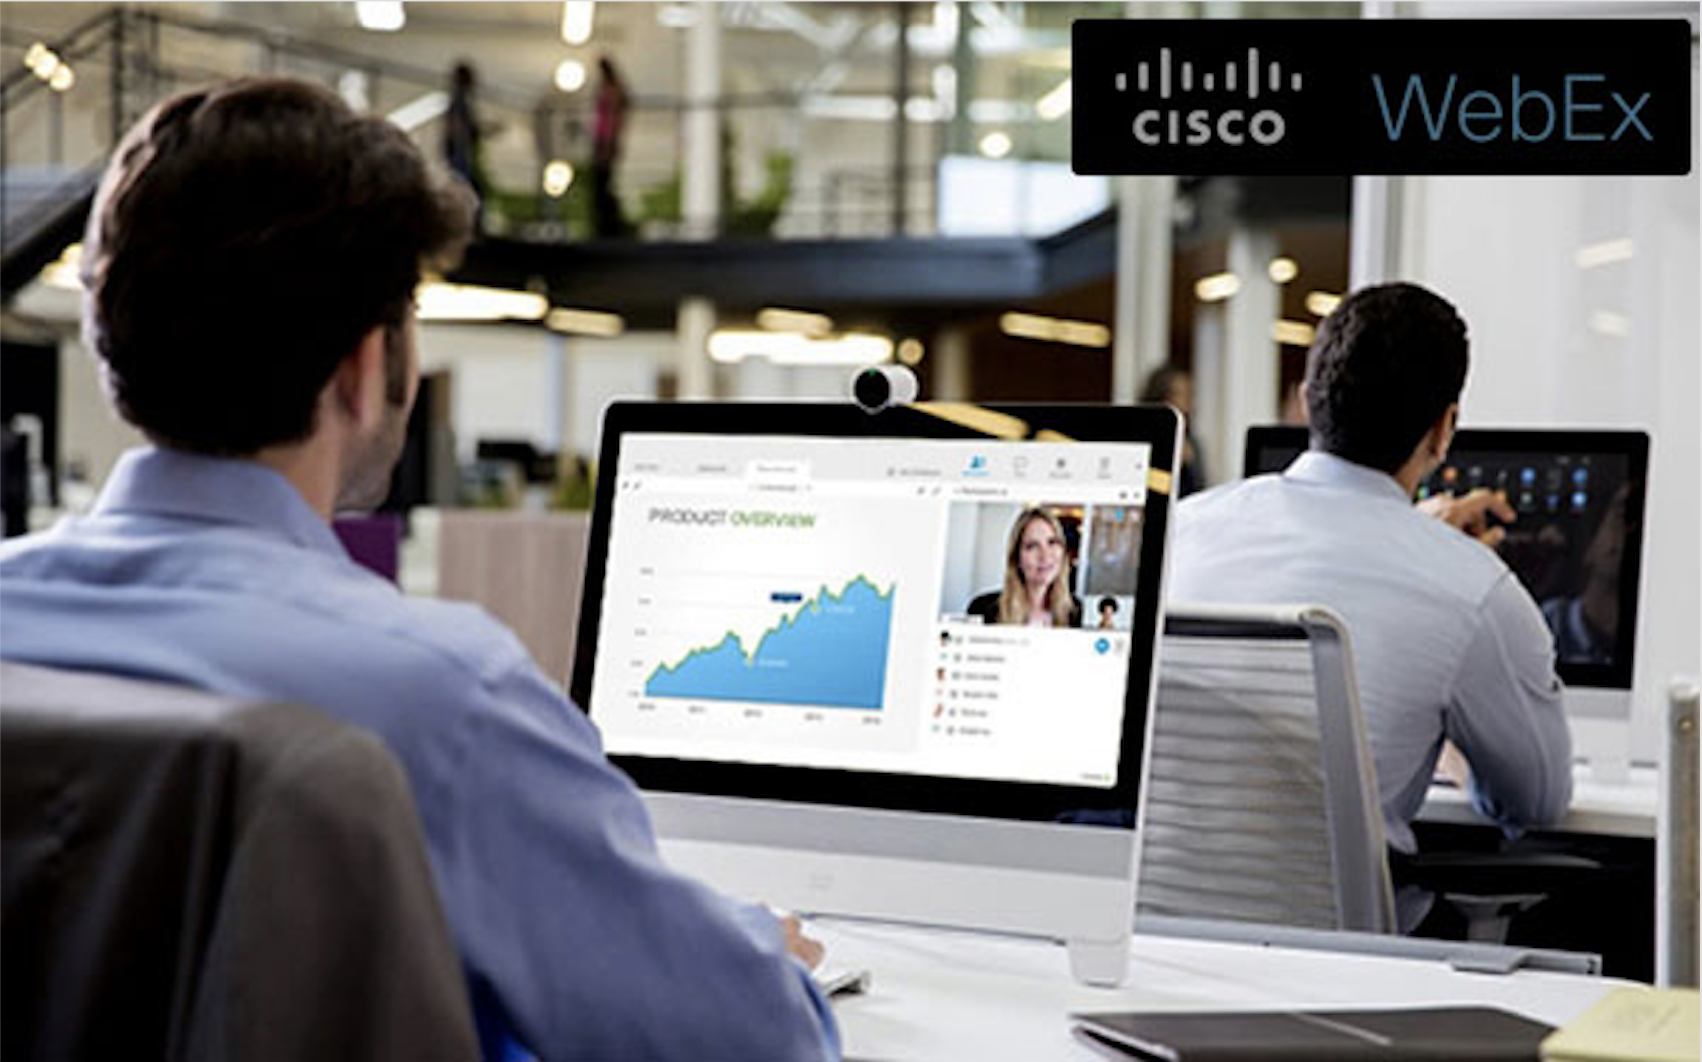 Cisco Re-Issues Patch For High-Severity WebEx Flaw